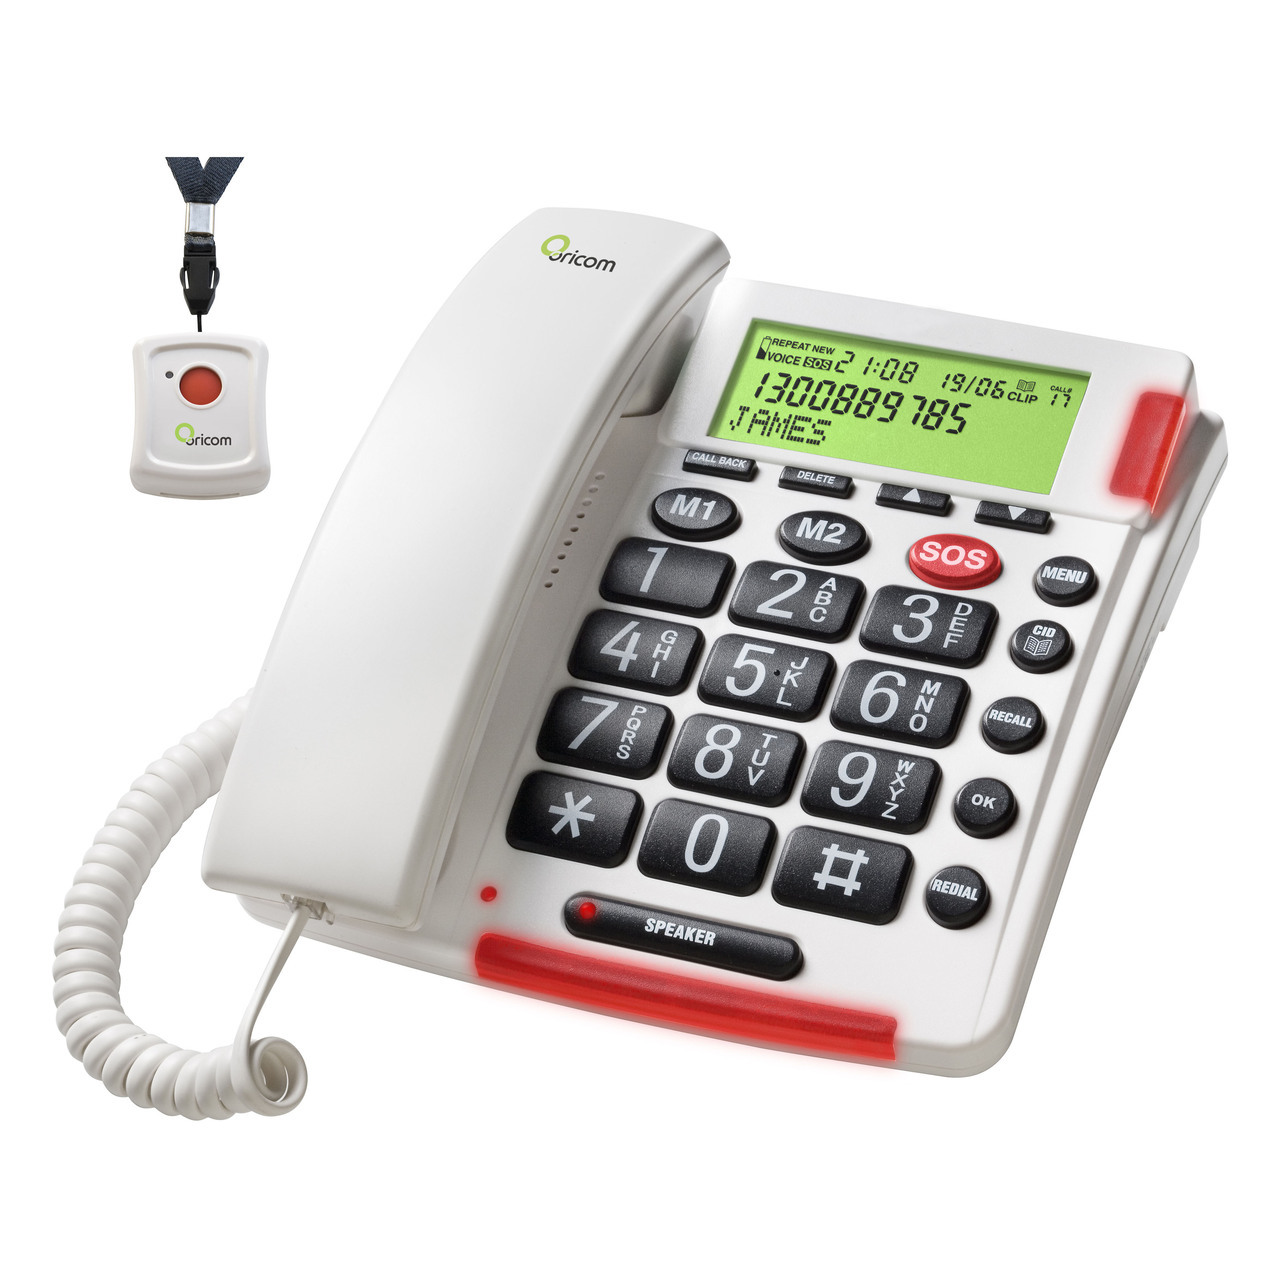 Buy an oricom care170 speakerphone with emergency call function care170 speakerphone with emergency call function mozeypictures Gallery